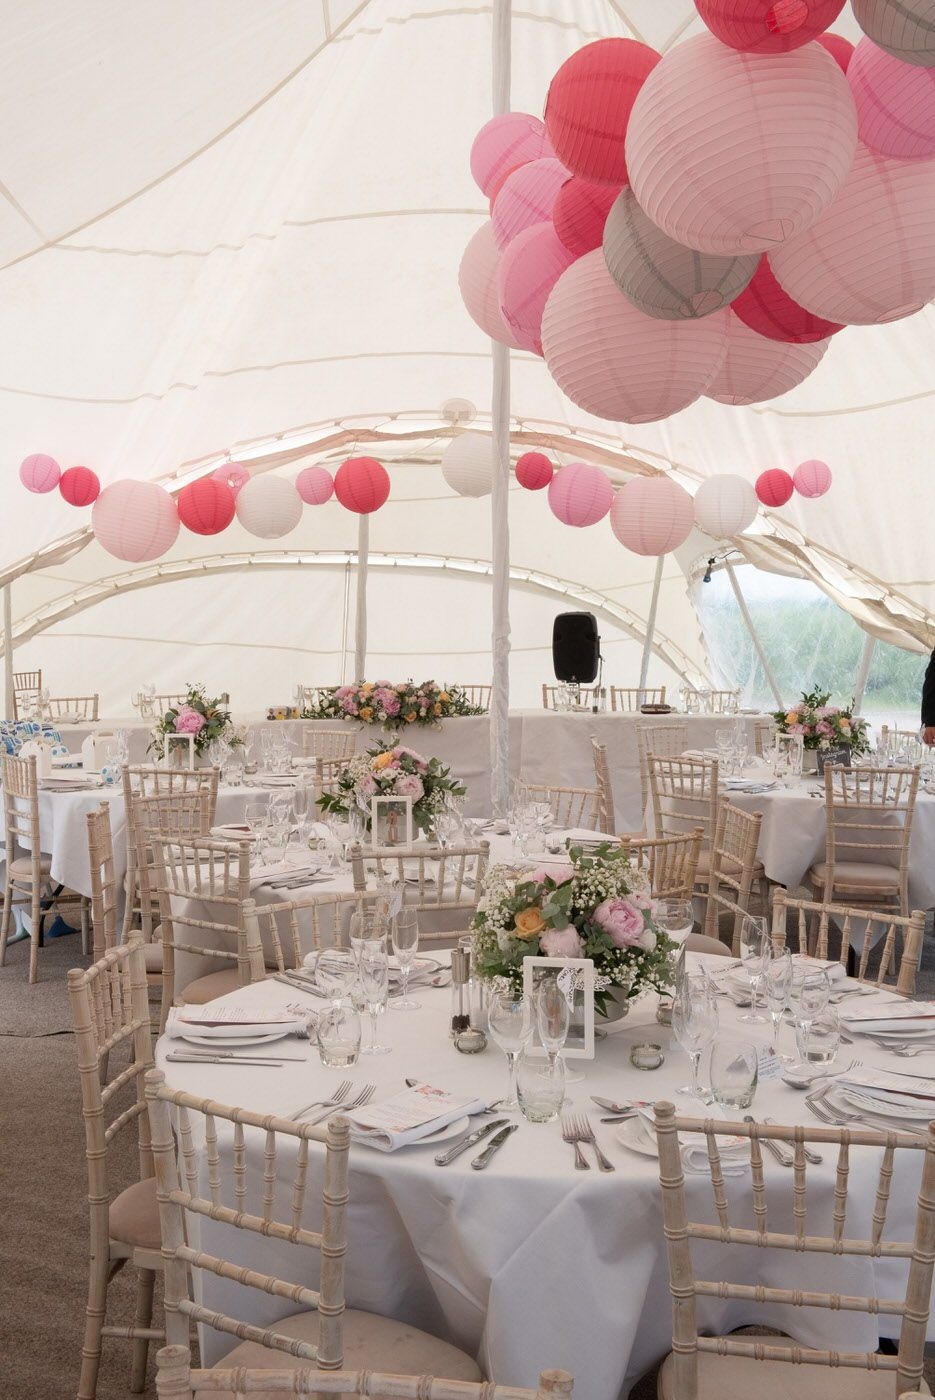 Wedding marquee decoration ideas  A Country Marquee wedding with budget decoration Photo by Chanon